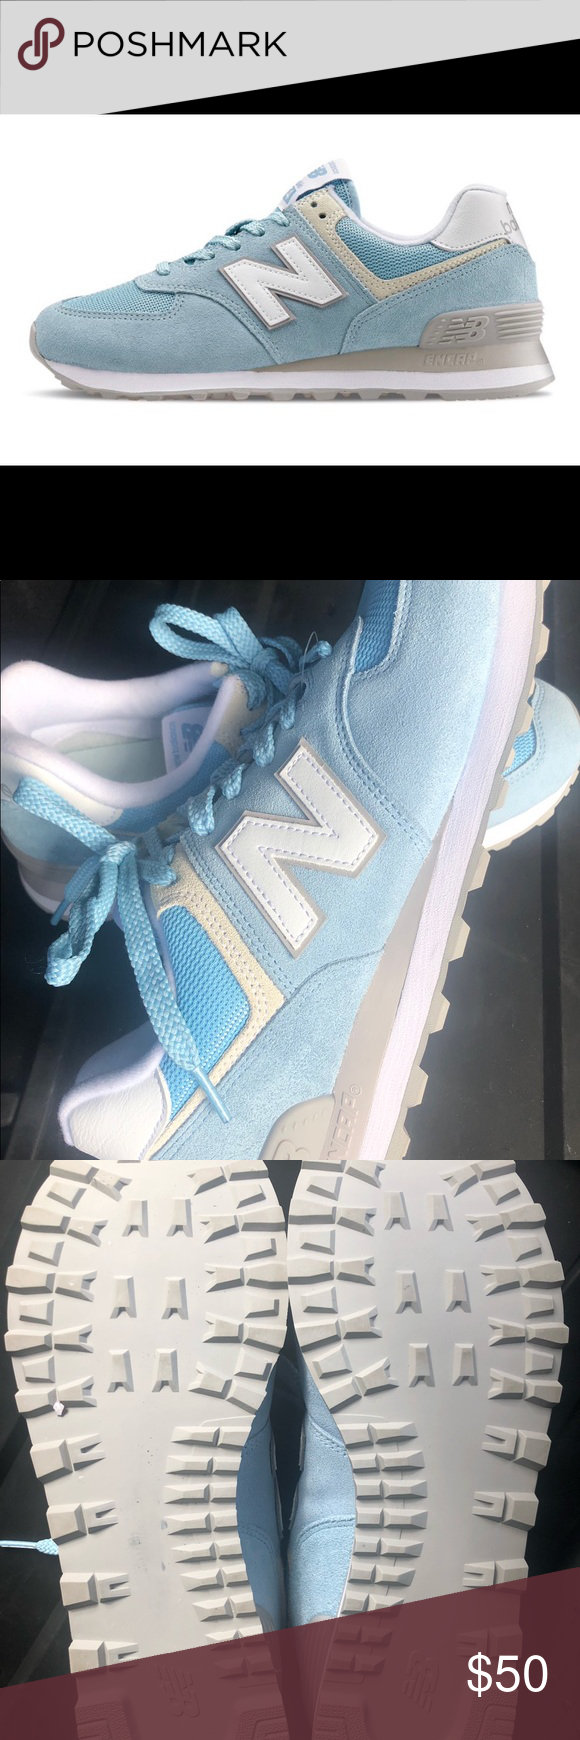 BNWOT New Balance 574 Blue Tennis Shoes Size 10 The New Balance 574 Core womens Source by tennisshoe1338 shoes outfit